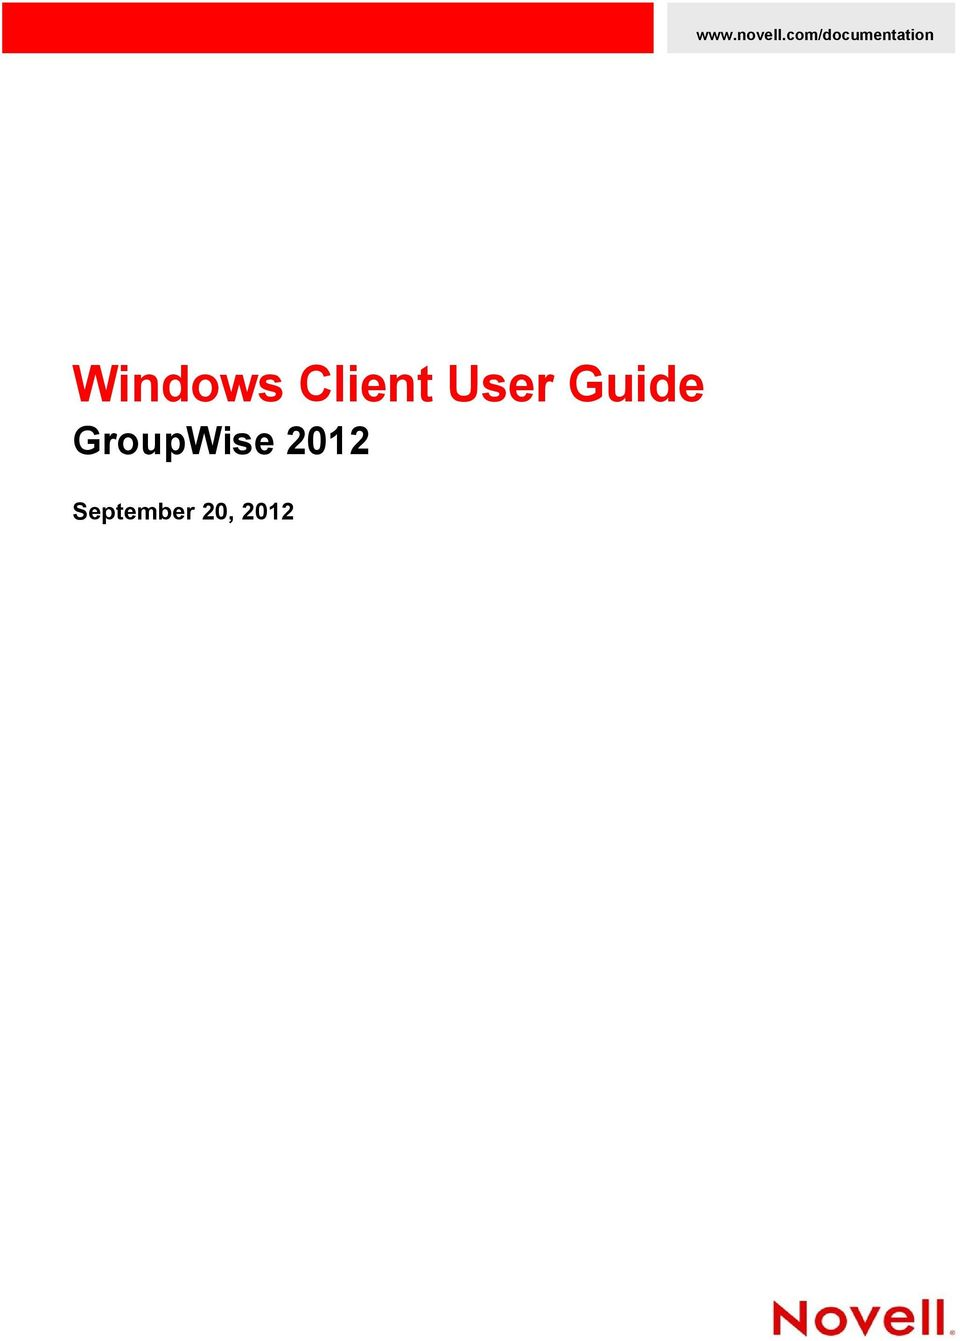 Windows Client User